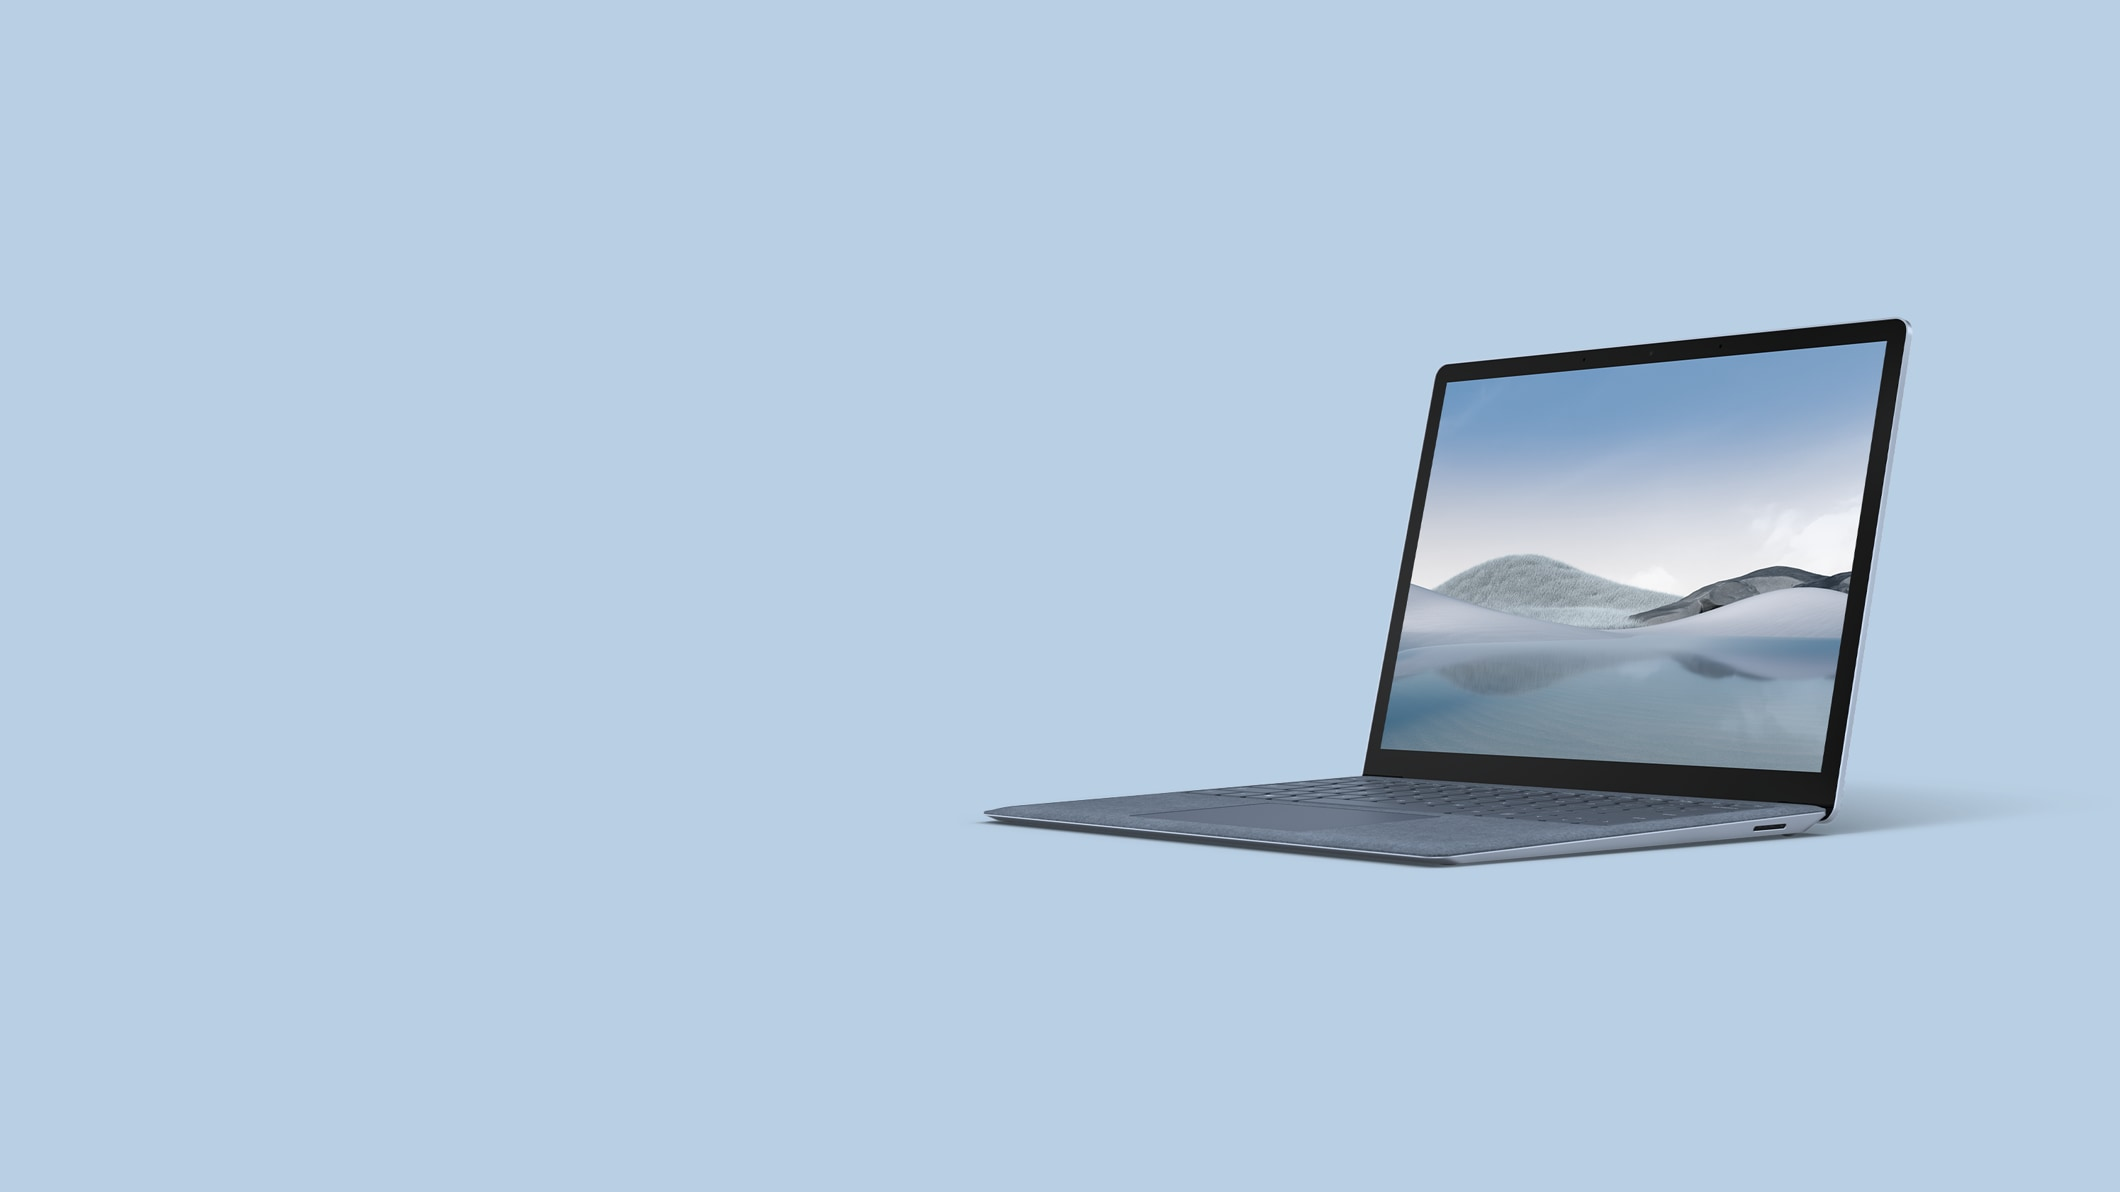 Surface Laptop 4 for Business in Ice Blue.